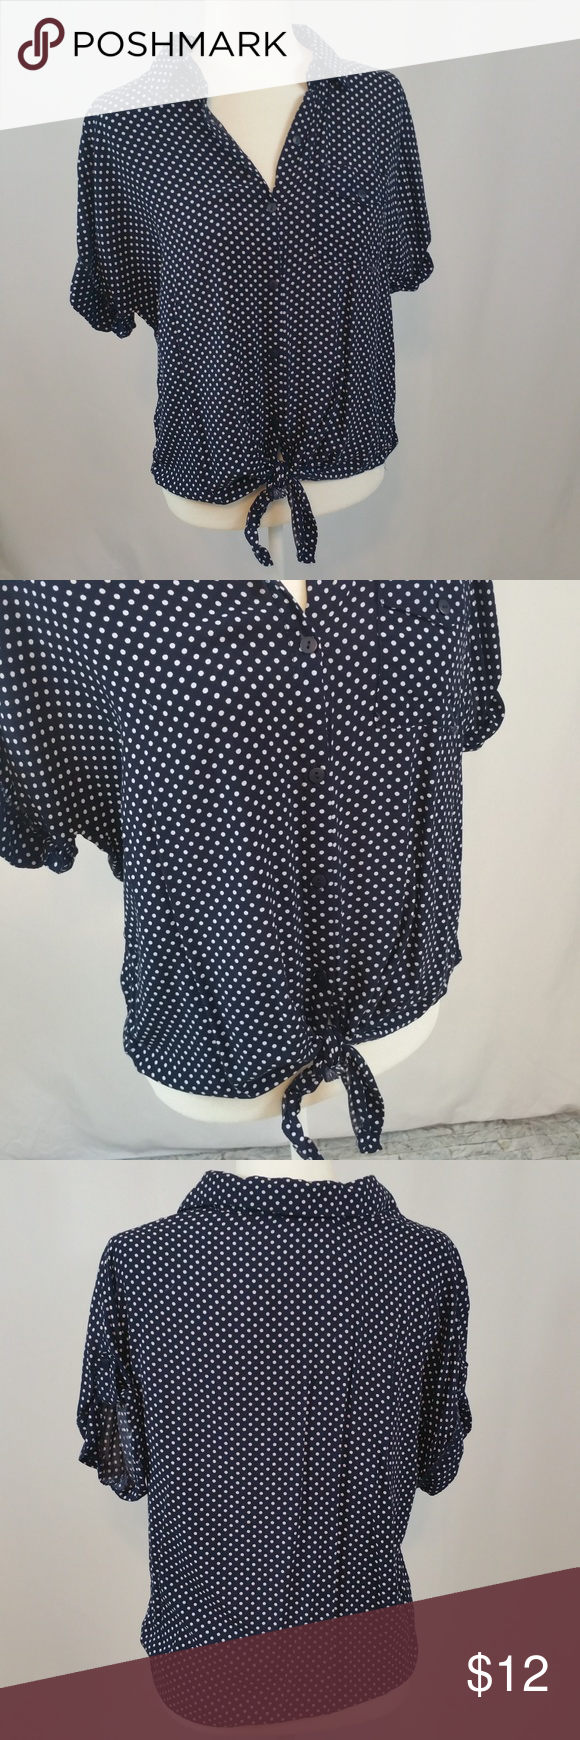 Love Note Button Down Top sz L Love Notes top size large.  Button Down Single pocket  ties at waist short sleeve  Navy with white polka dots approximate measurements underarm to underarm 19